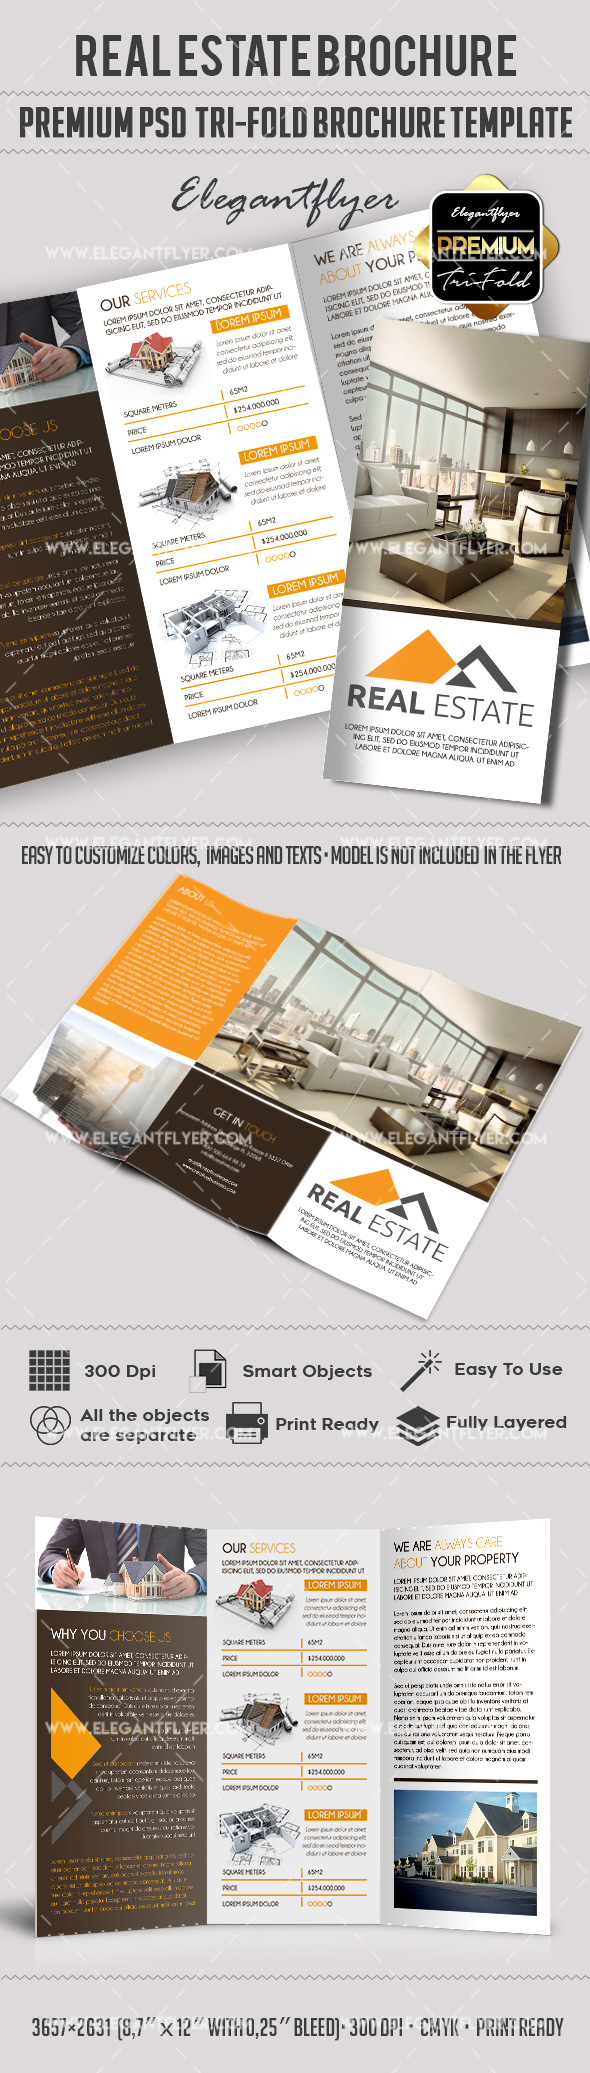 Real Estate – Premium Tri-Fold PSD Brochure Template